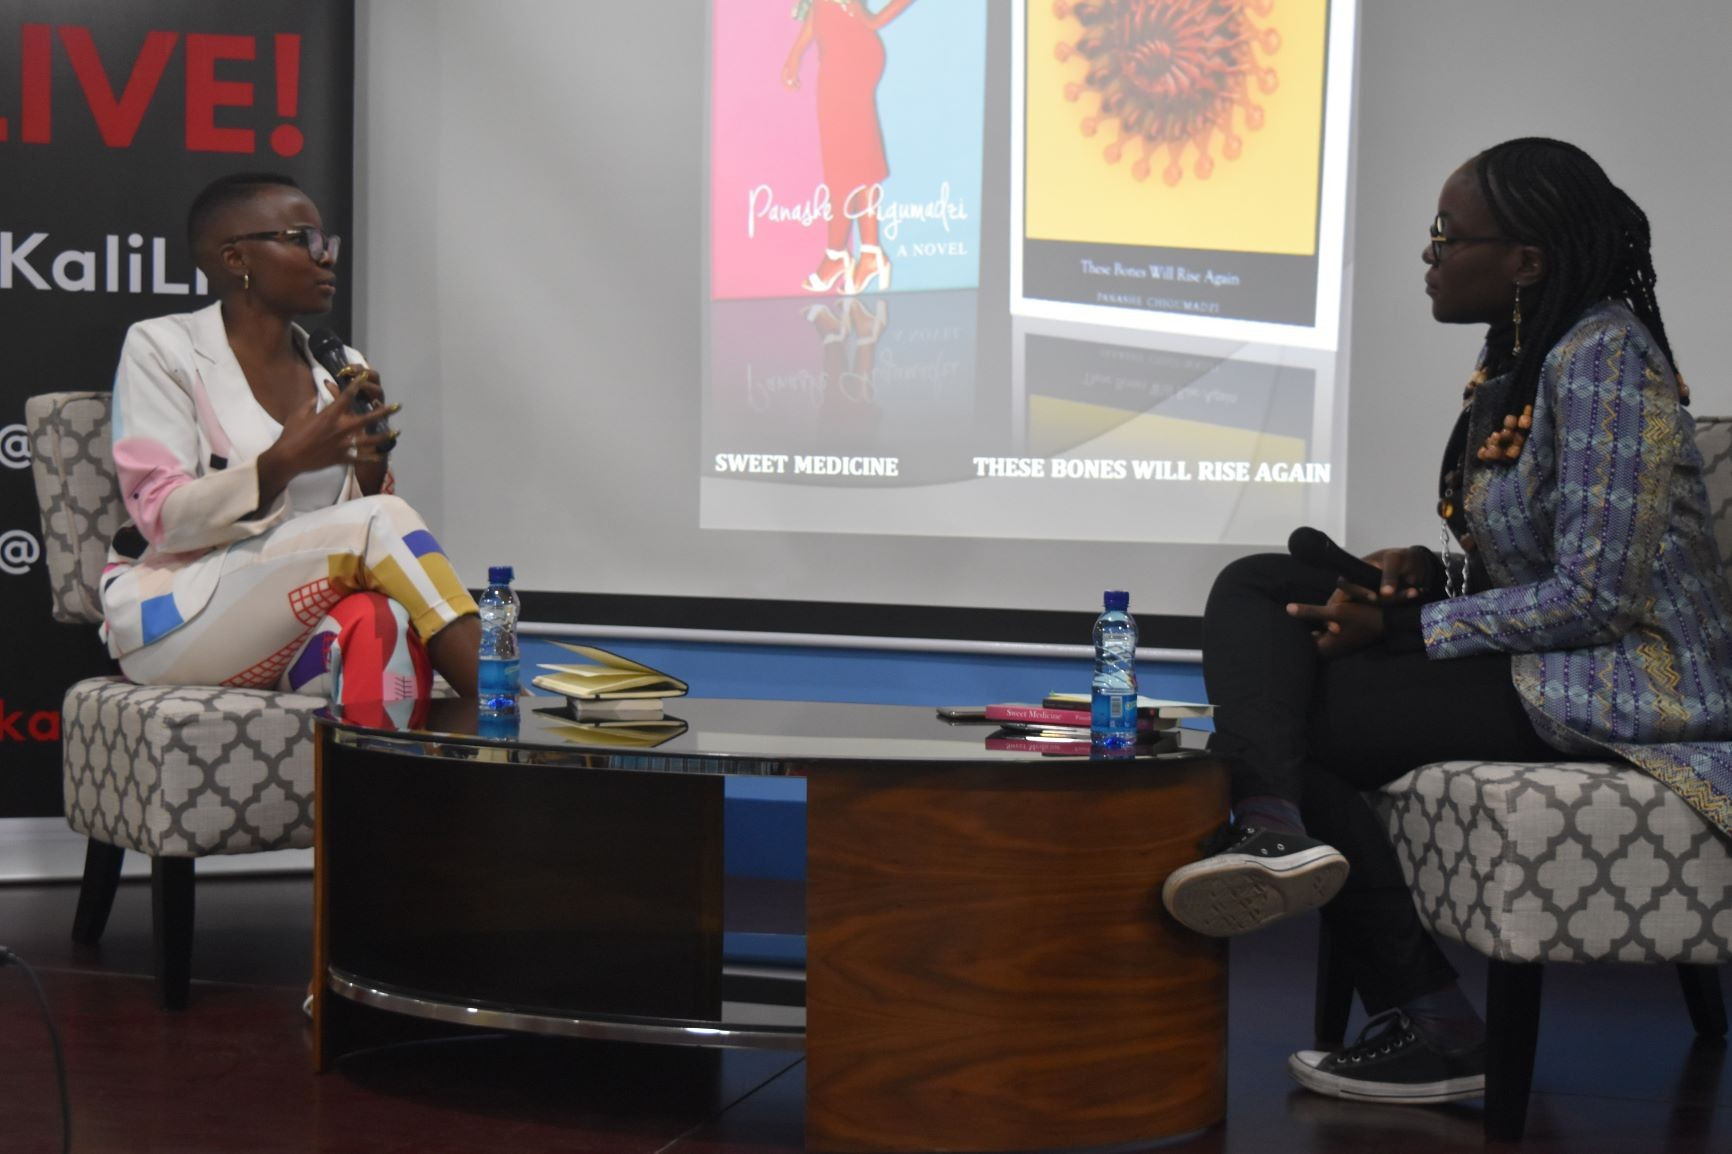 A Conversation With Author Panashe Chigumadzi based on works – 'These Bones will Rise Again' and 'Sweet Medicine'